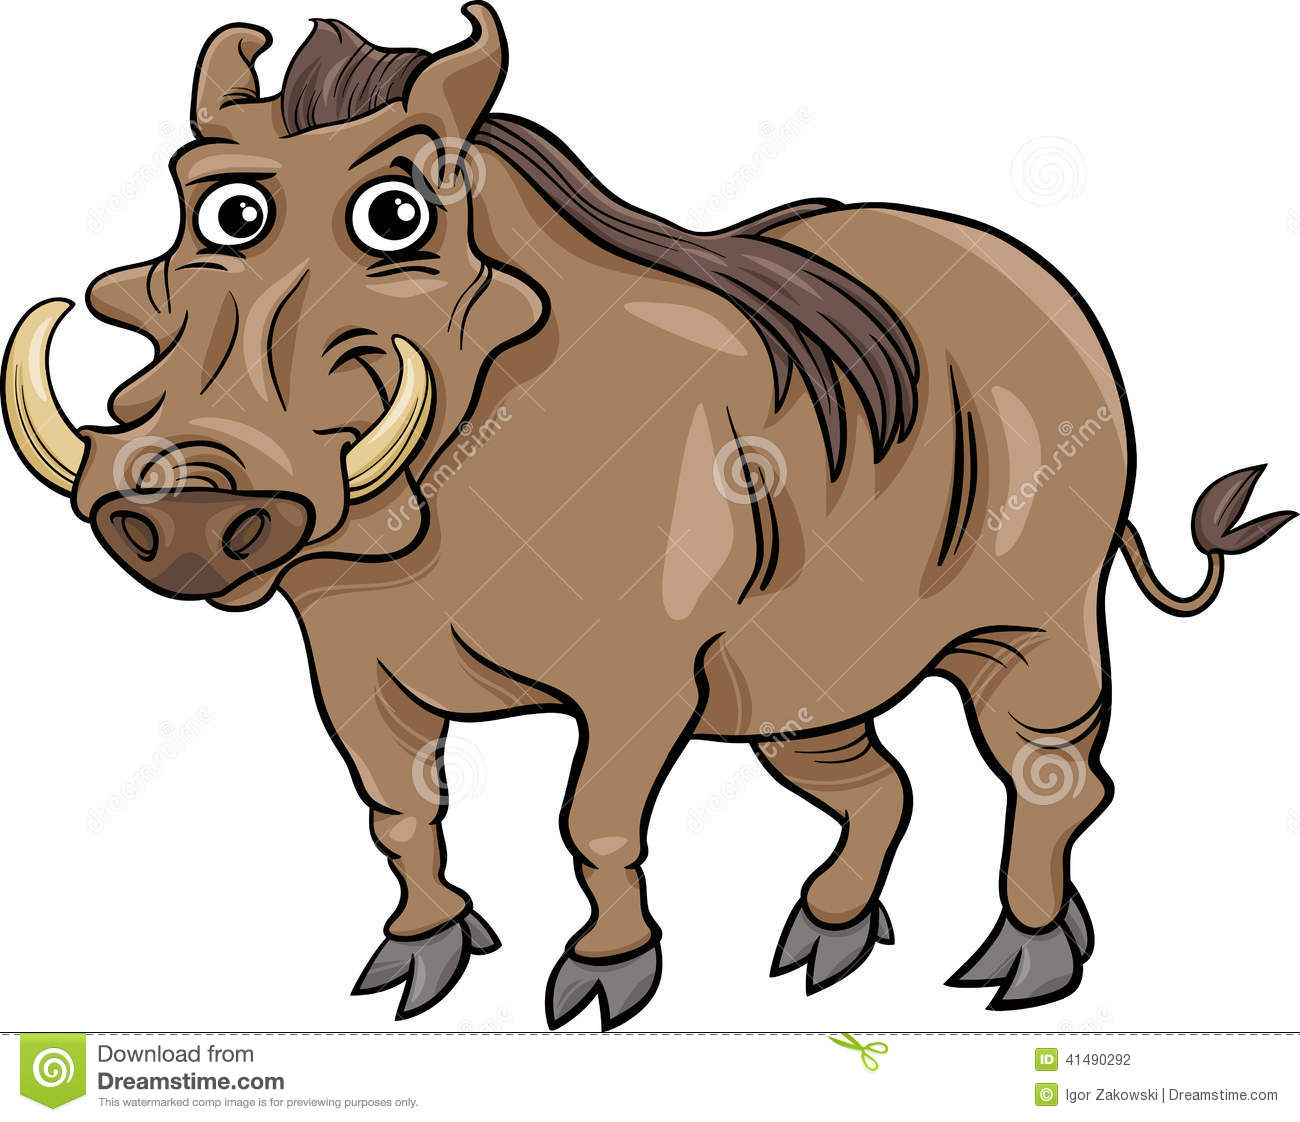 Warthog clipart #11, Download drawings